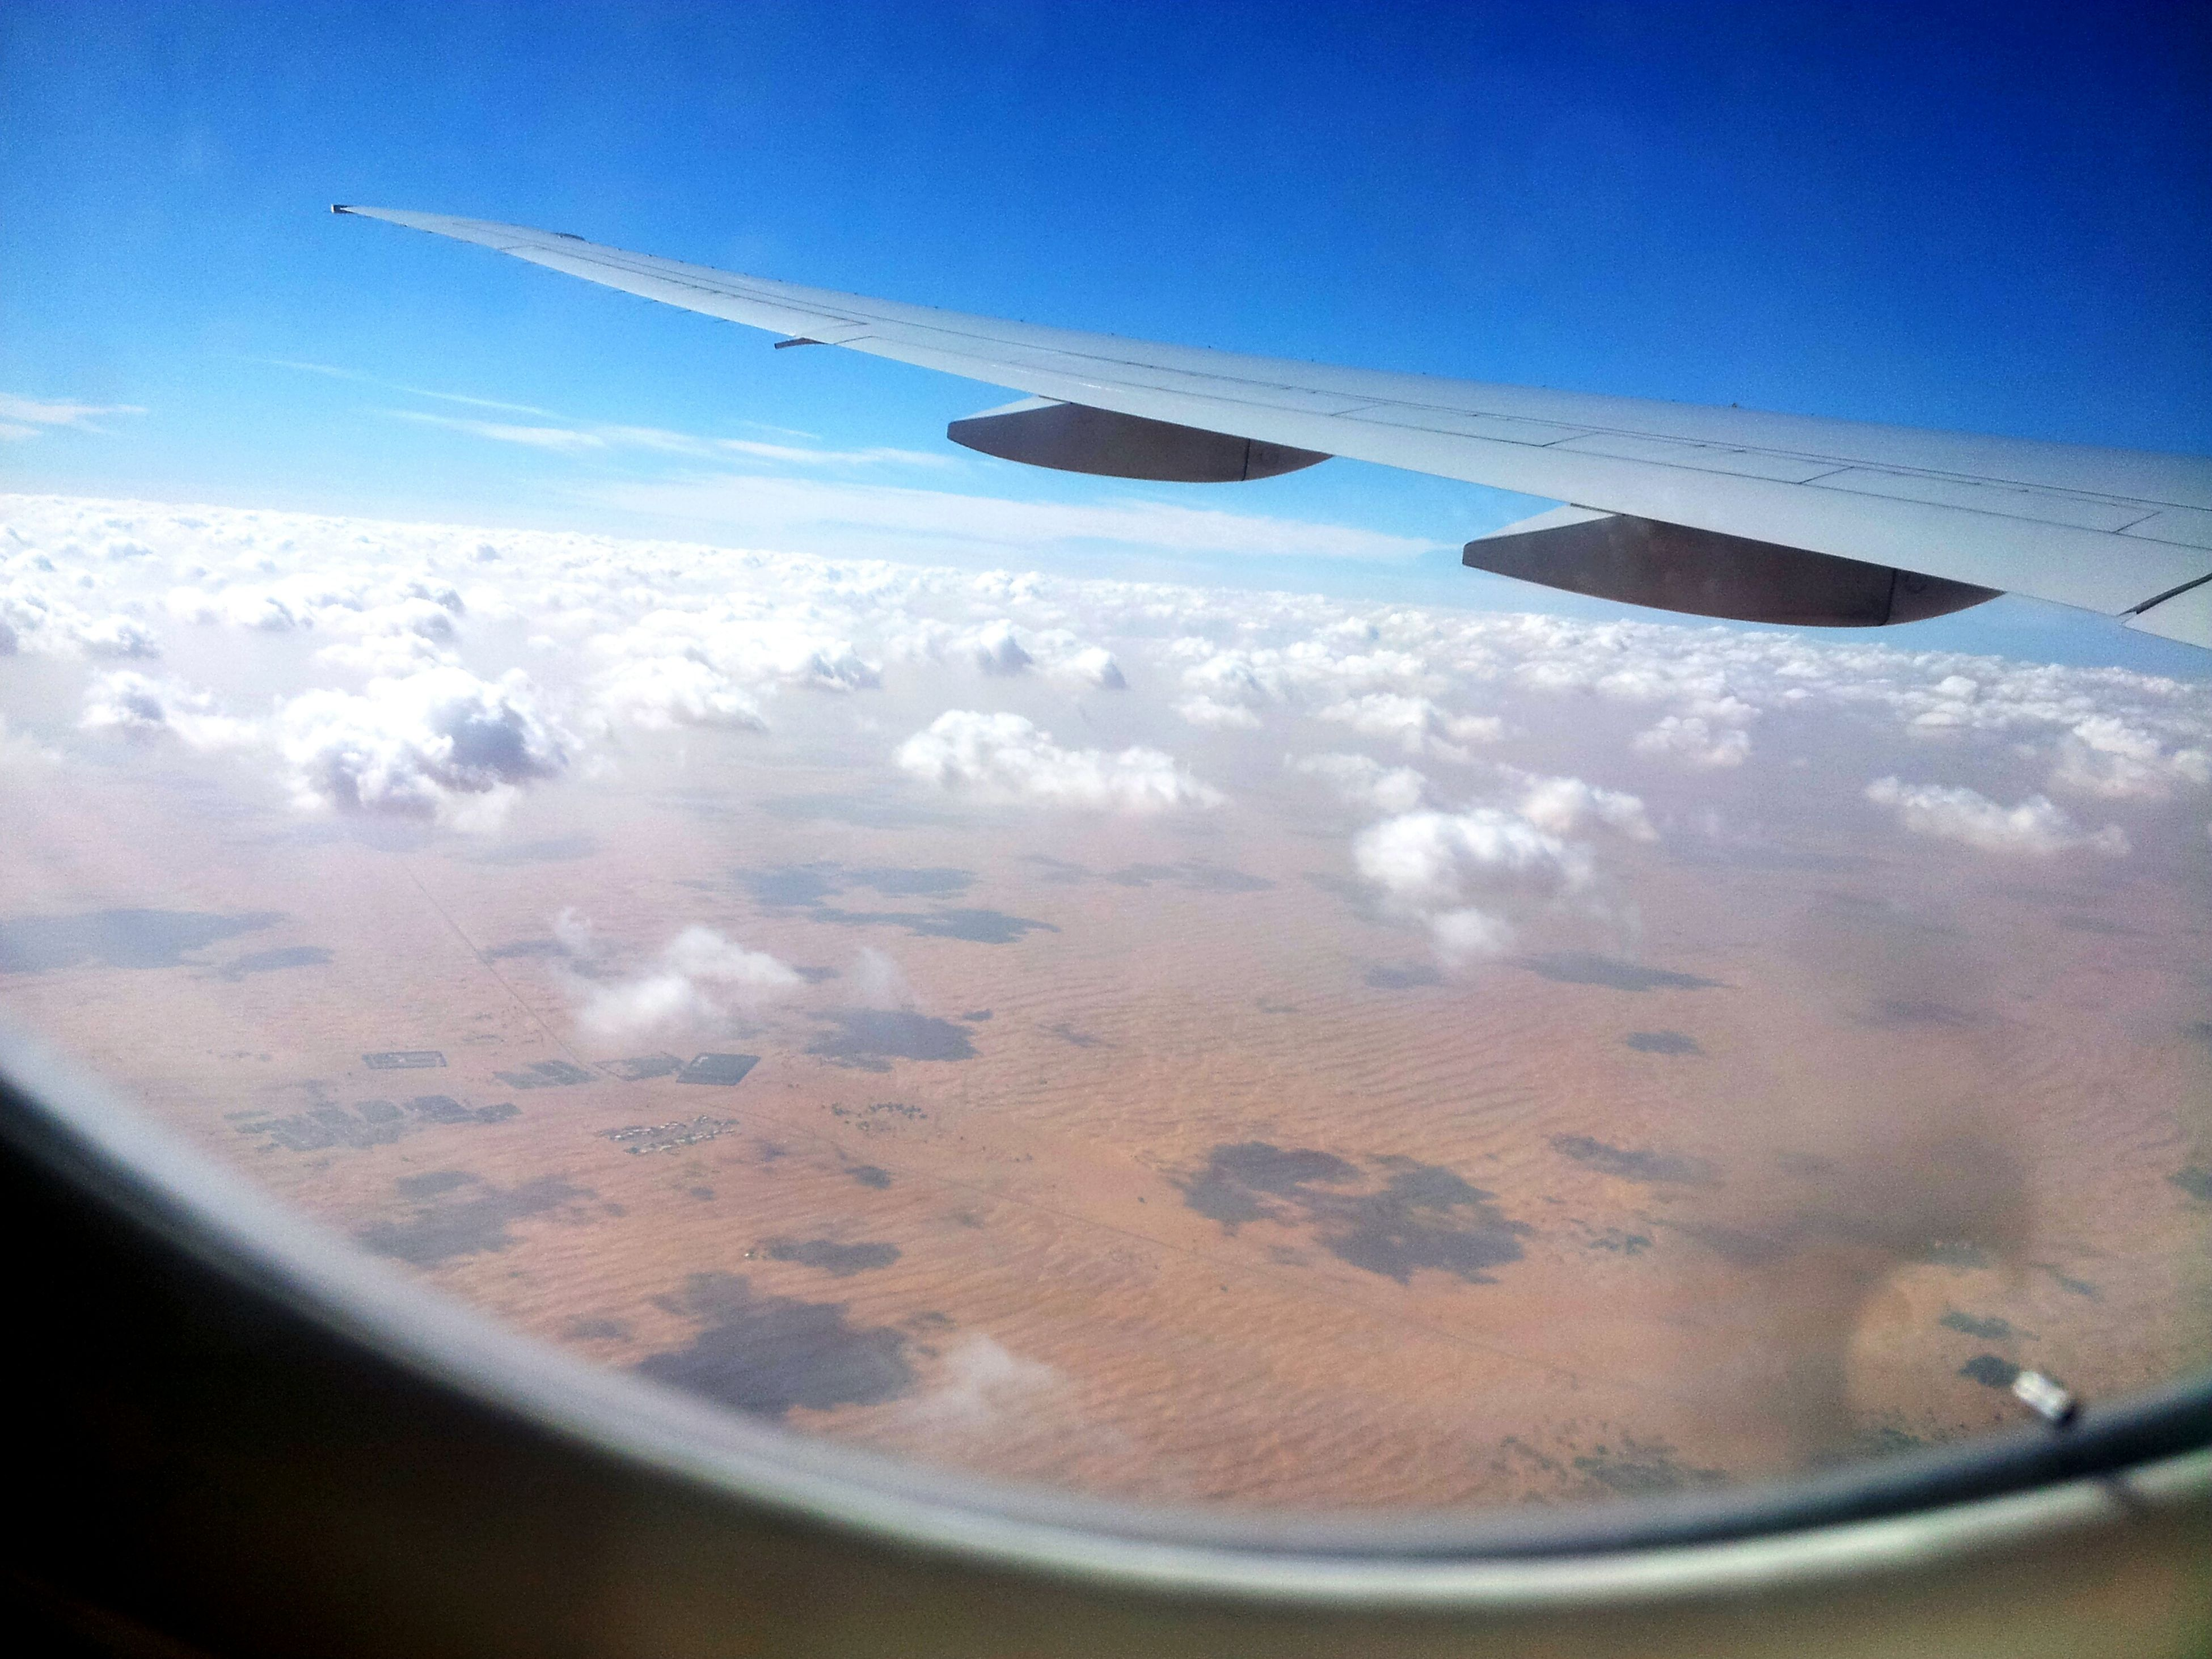 transportation, airplane, air vehicle, mode of transport, aircraft wing, flying, part of, travel, cropped, aerial view, journey, public transportation, mid-air, on the move, vehicle interior, vehicle part, sky, window, airplane wing, aeroplane